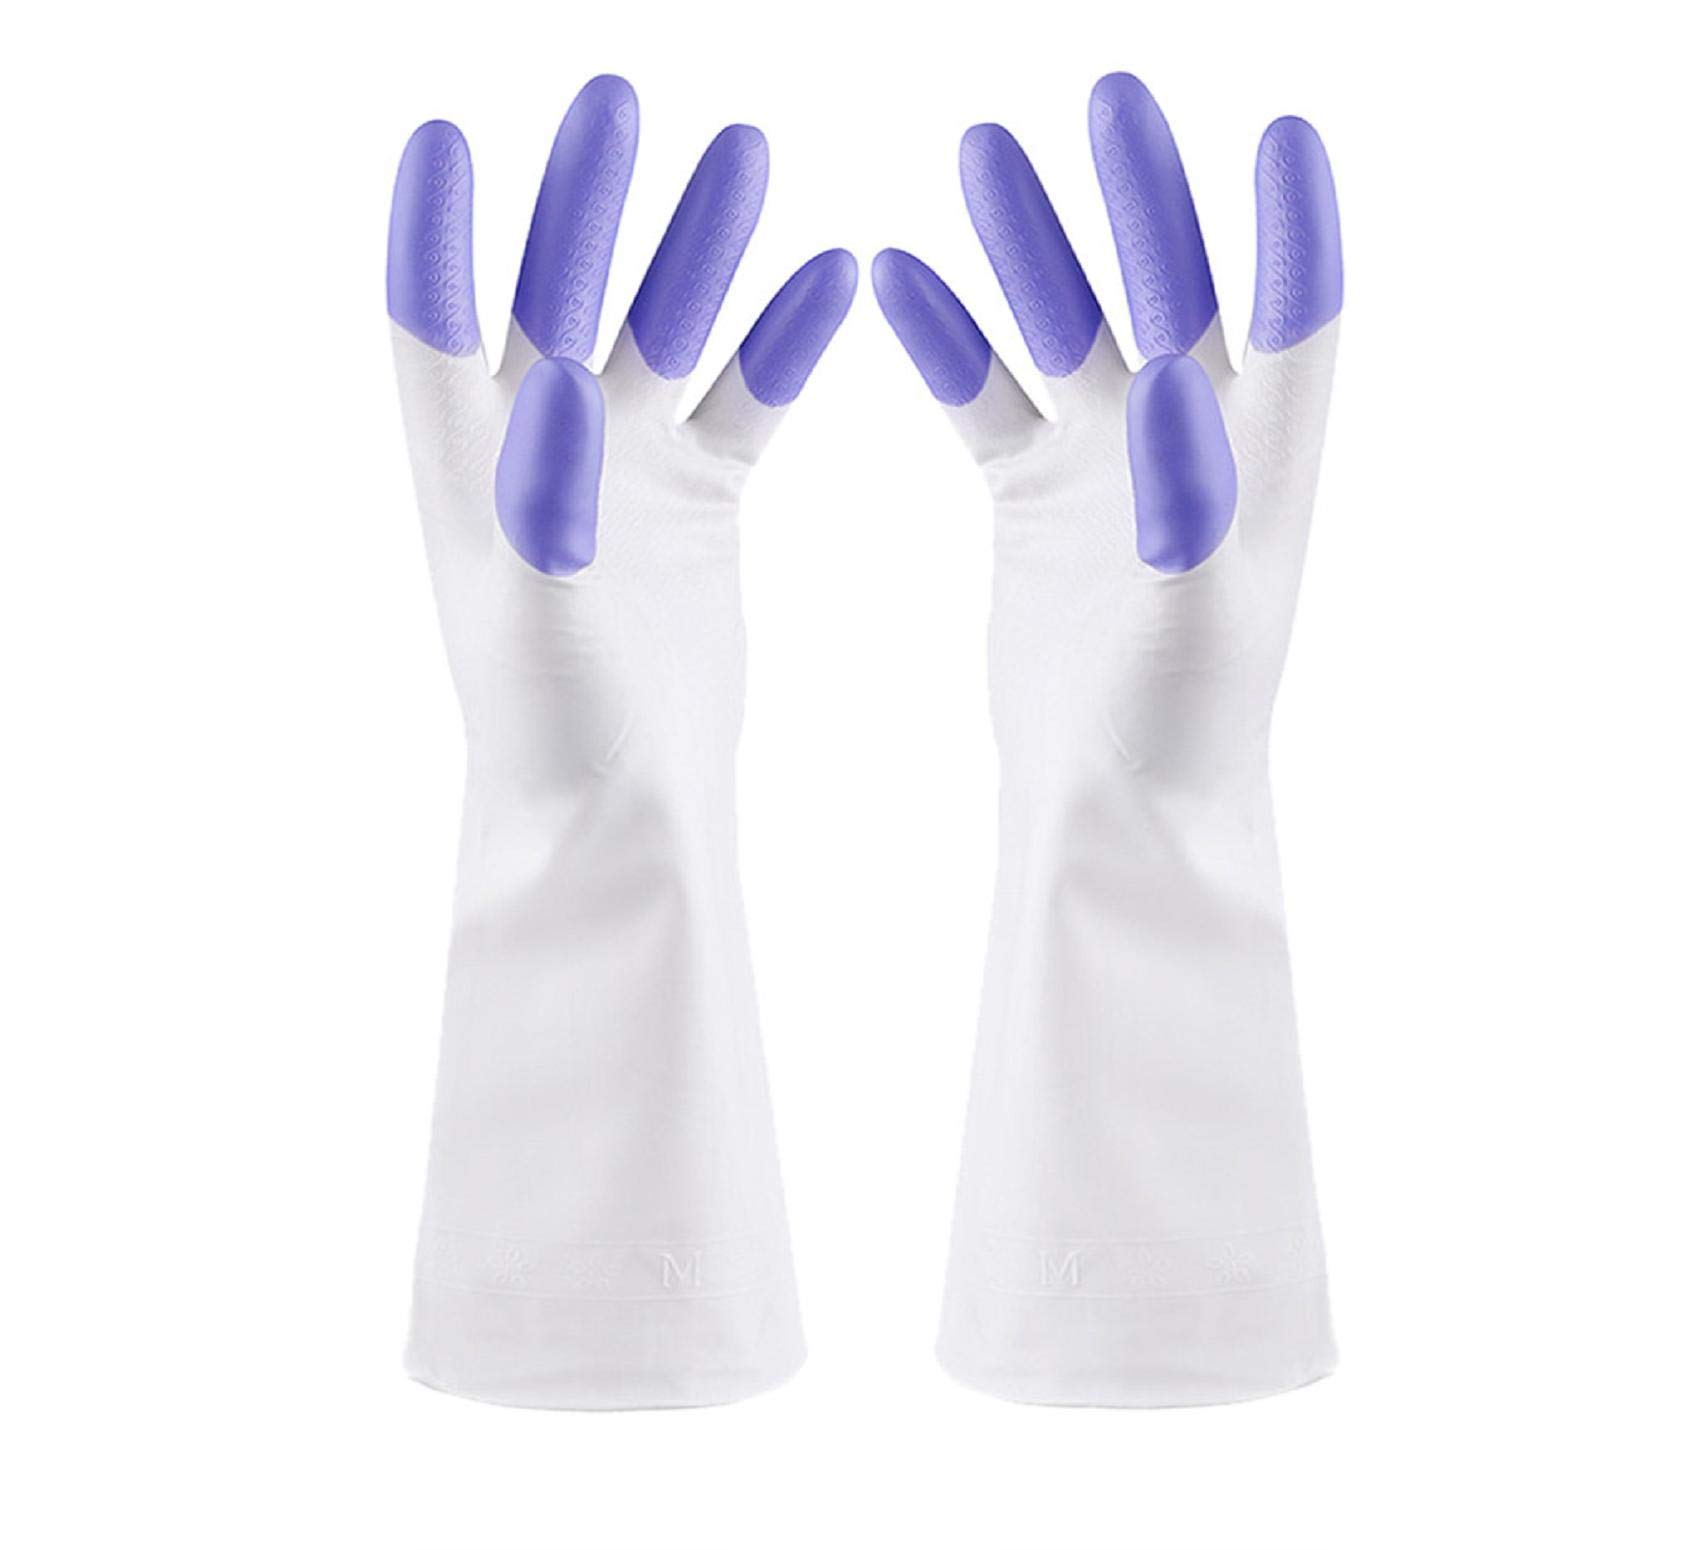 Vertily Pair Gloves,2 Pairs Rubber Gloves Latex Free Kitchen Cleaning Gloves Household Waterproof Dishwashing Living M Tools Home Decoration